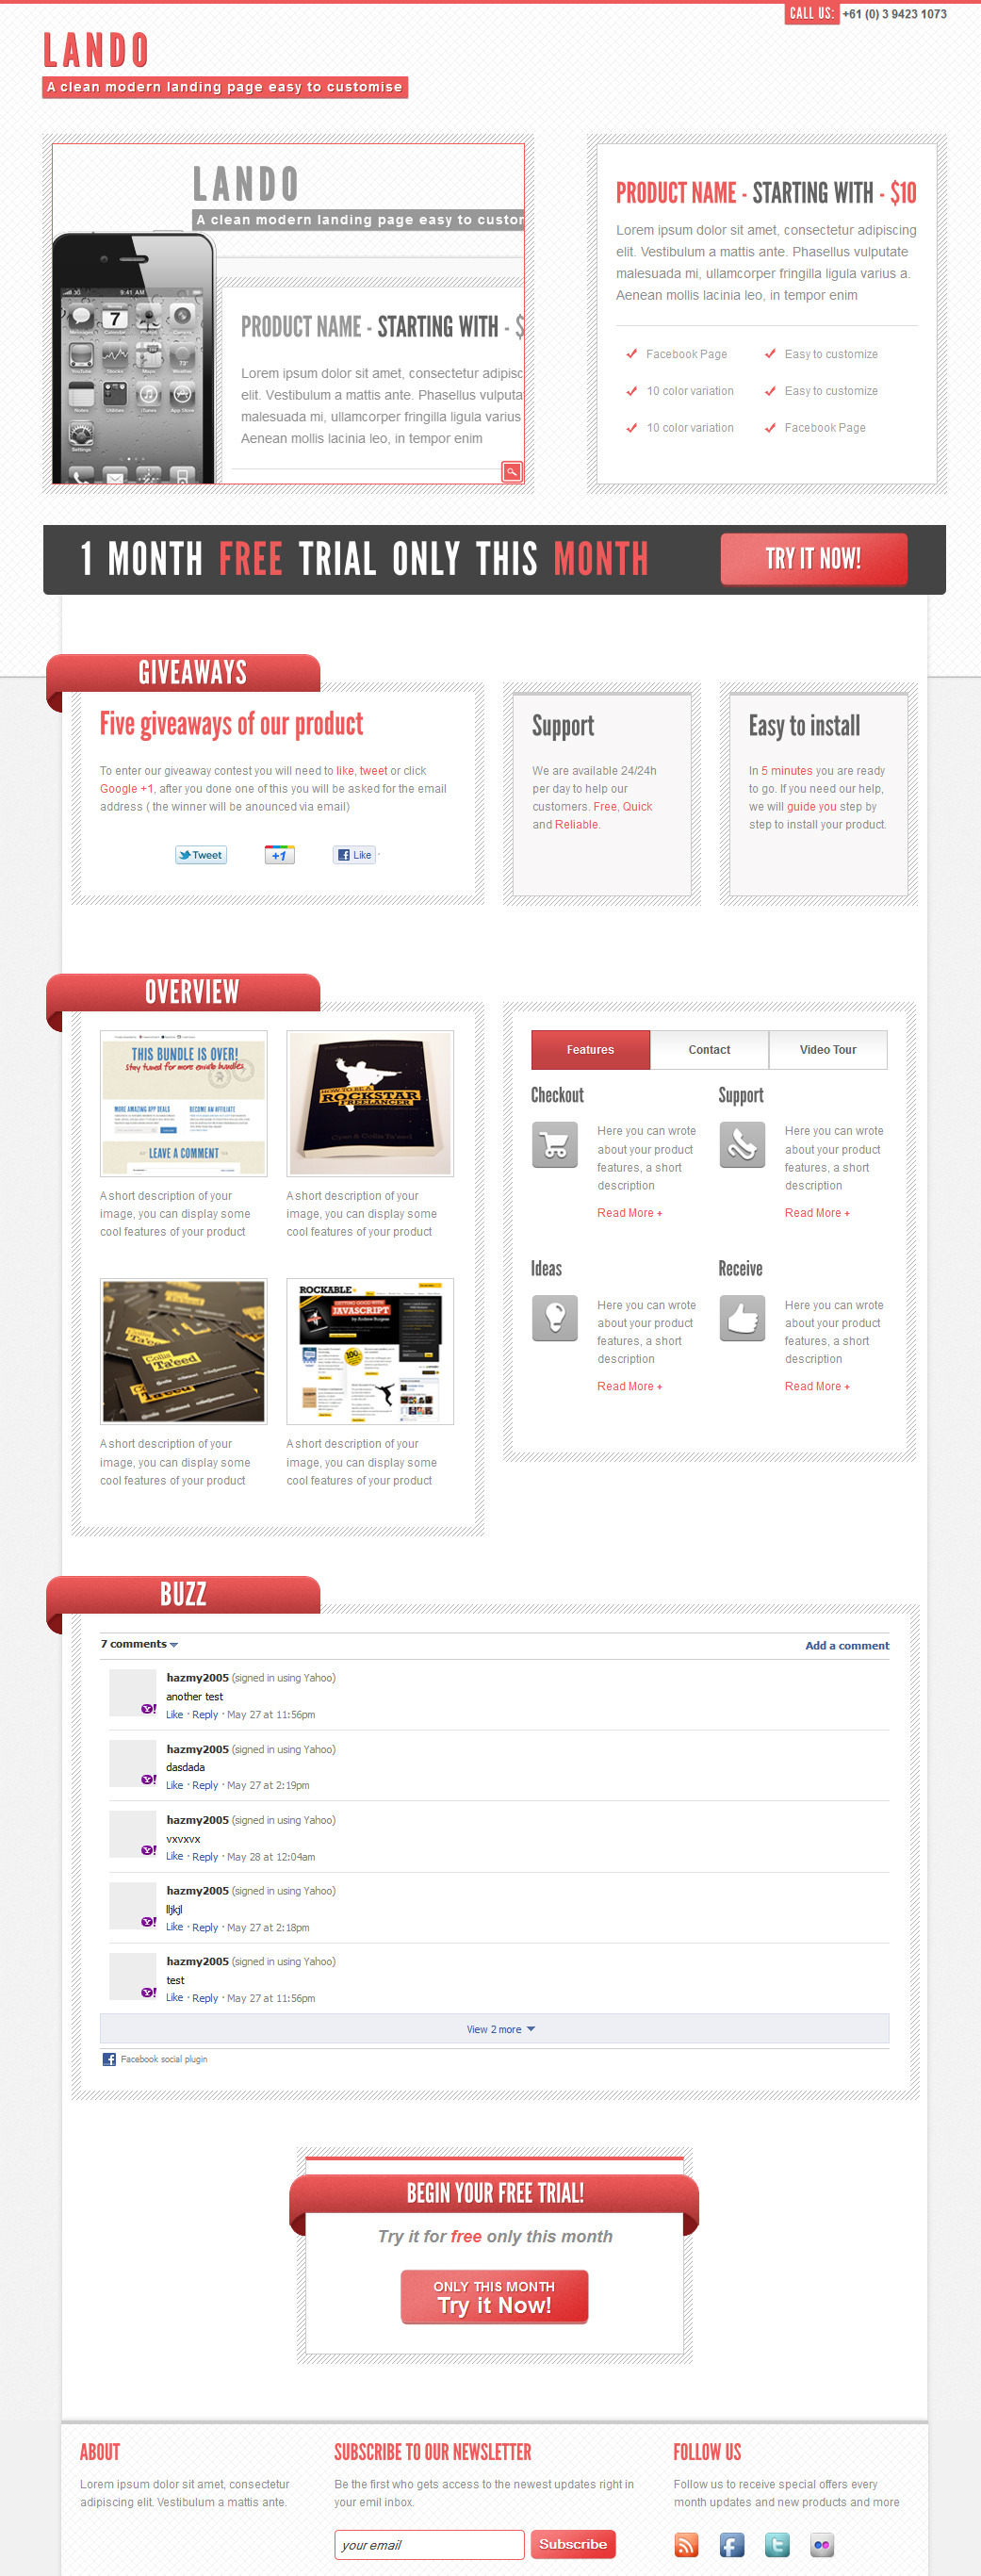 Lando landing page with facebook template - Product layout with social share and facebook comments